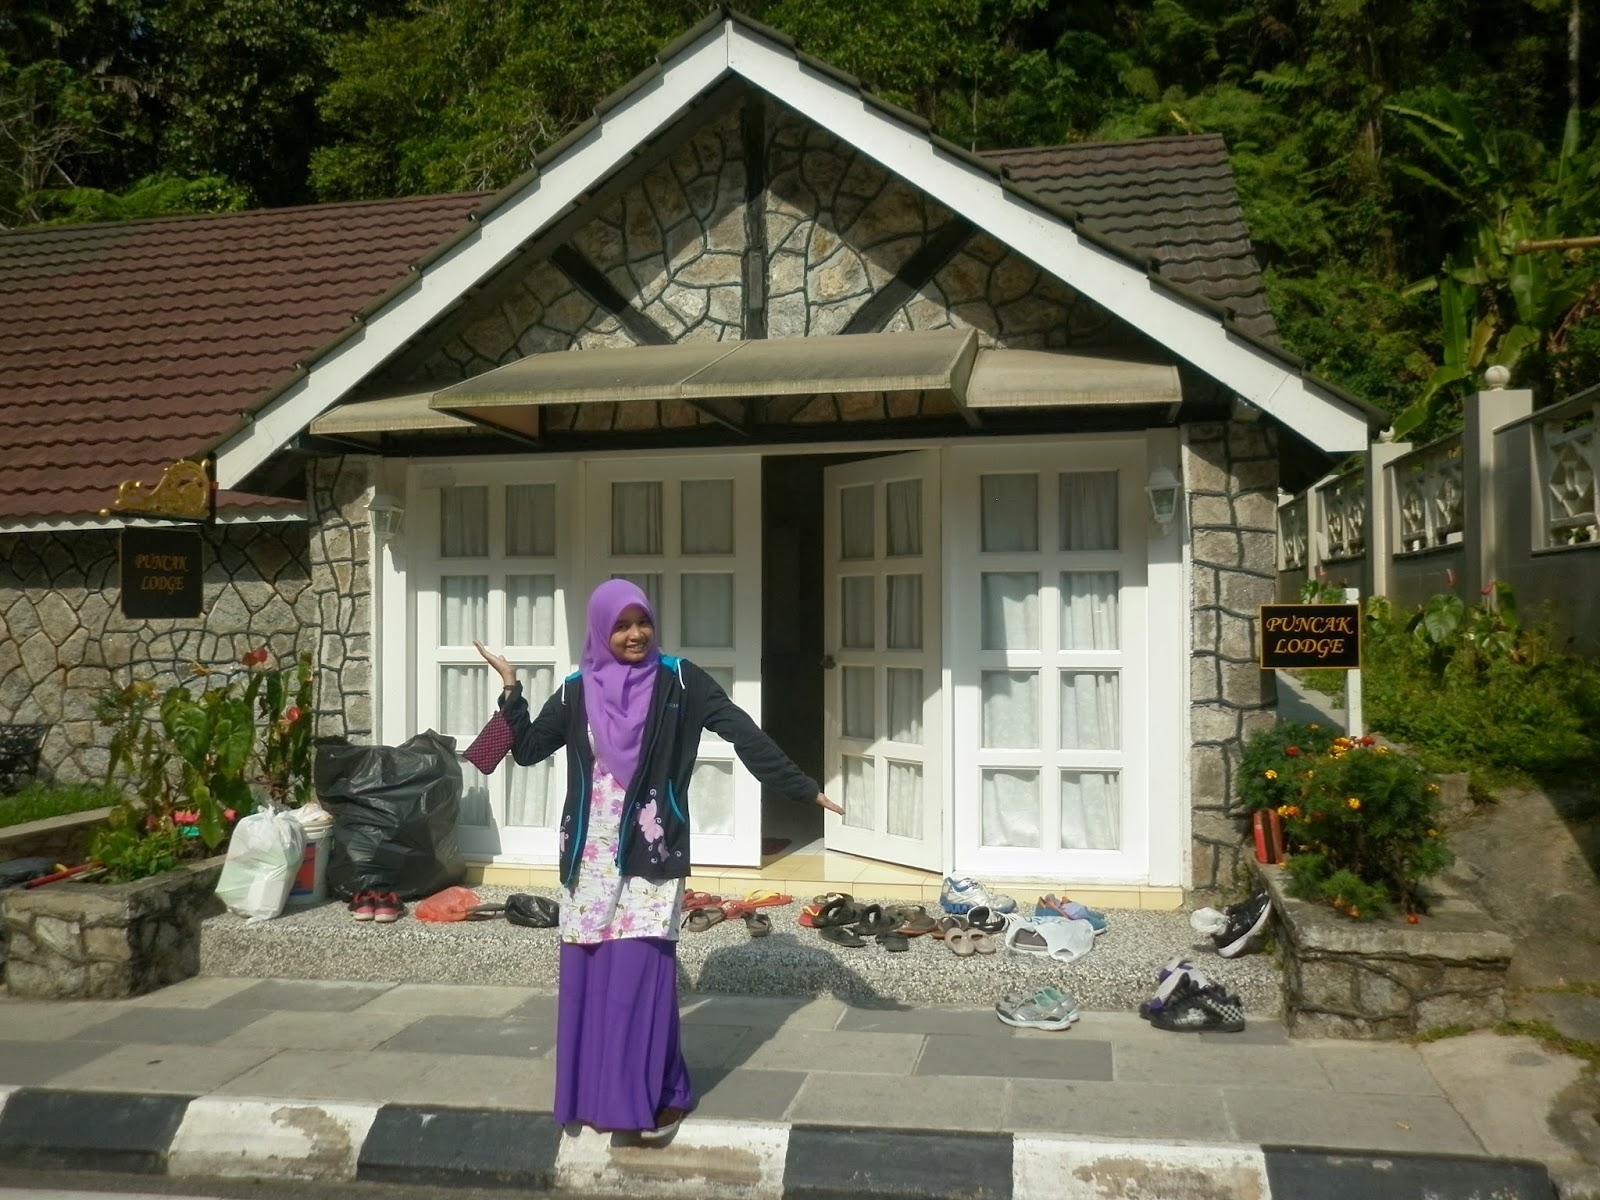 fraser hill, kanvas seorang elf, adkdayah, resort